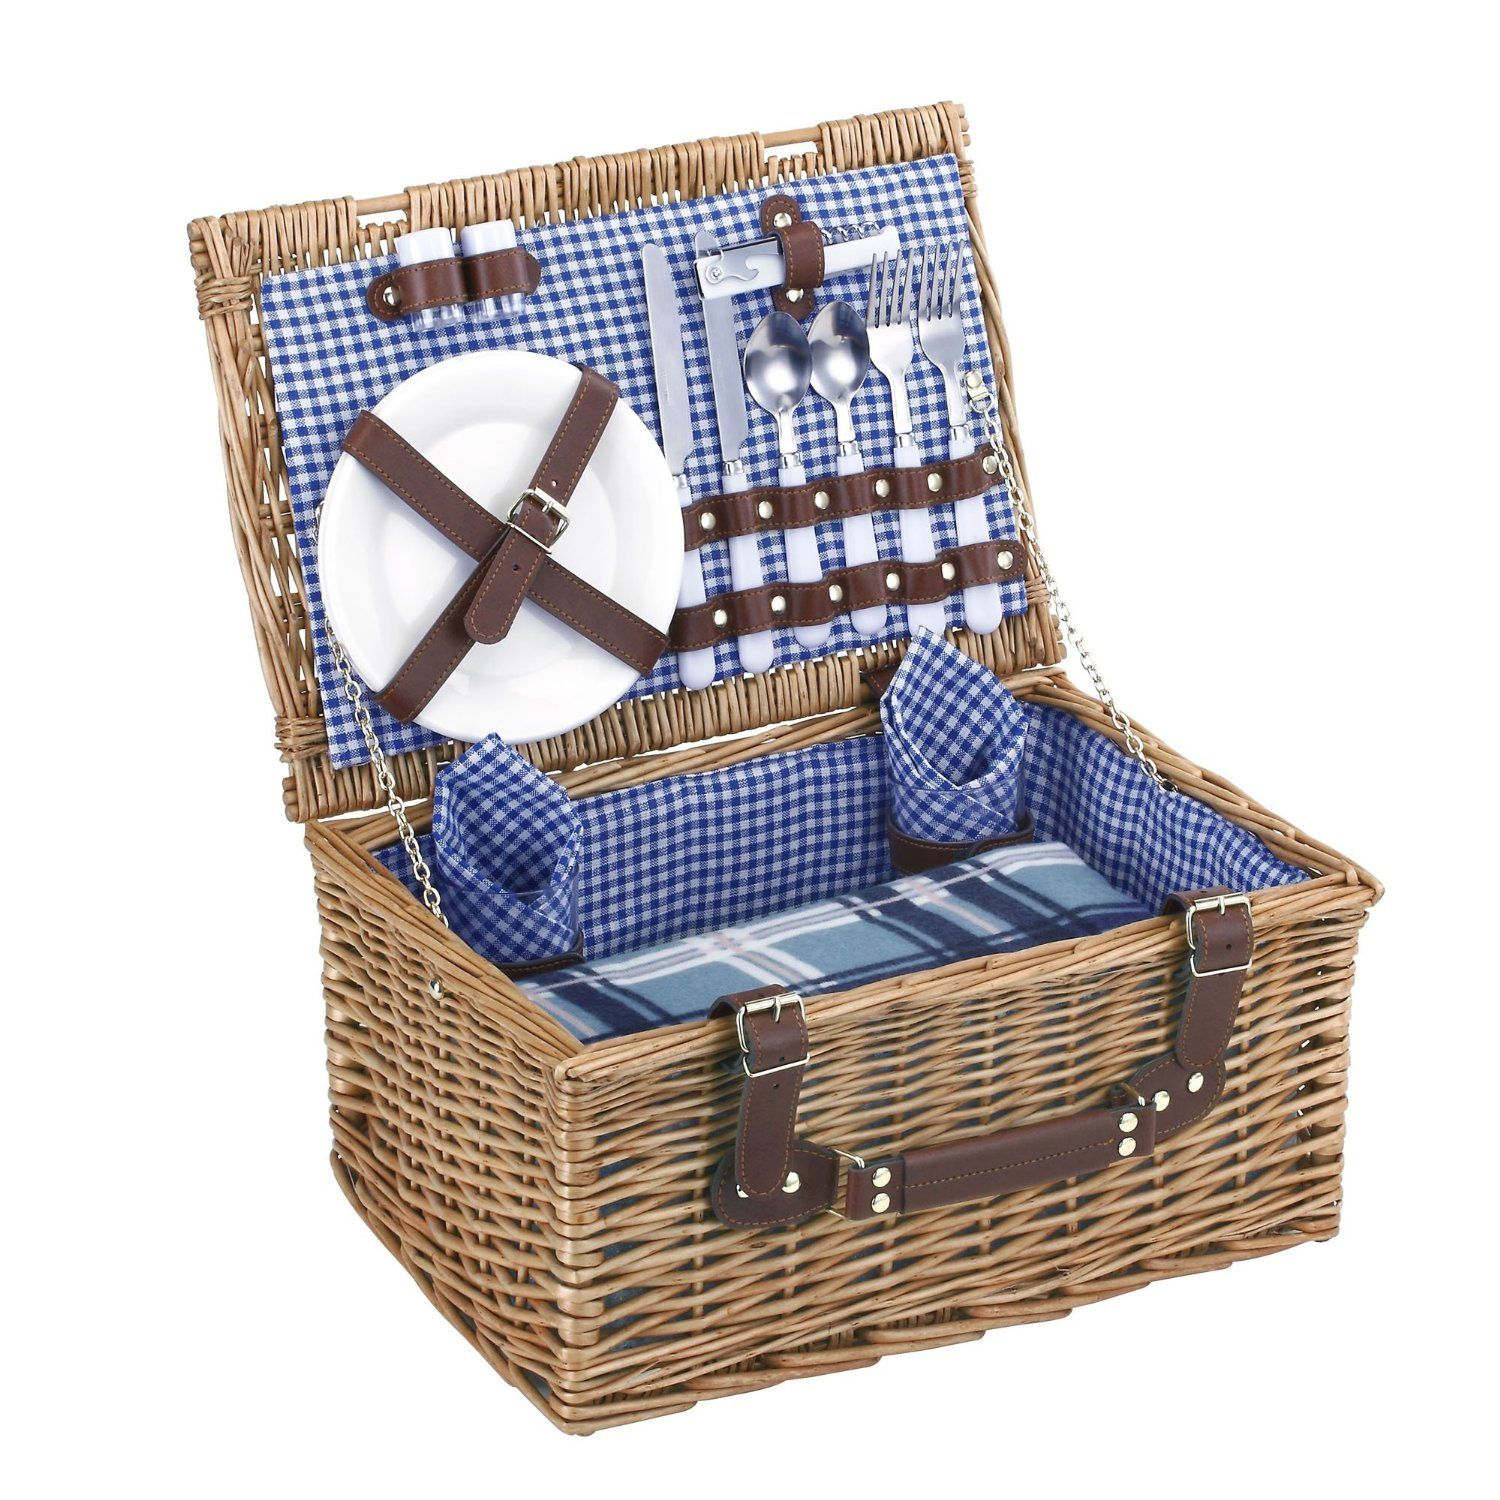 Wedding Gift For Friend Who Has Everything: This Idyllic Picnic Basket Is Everything Your Wife Needs